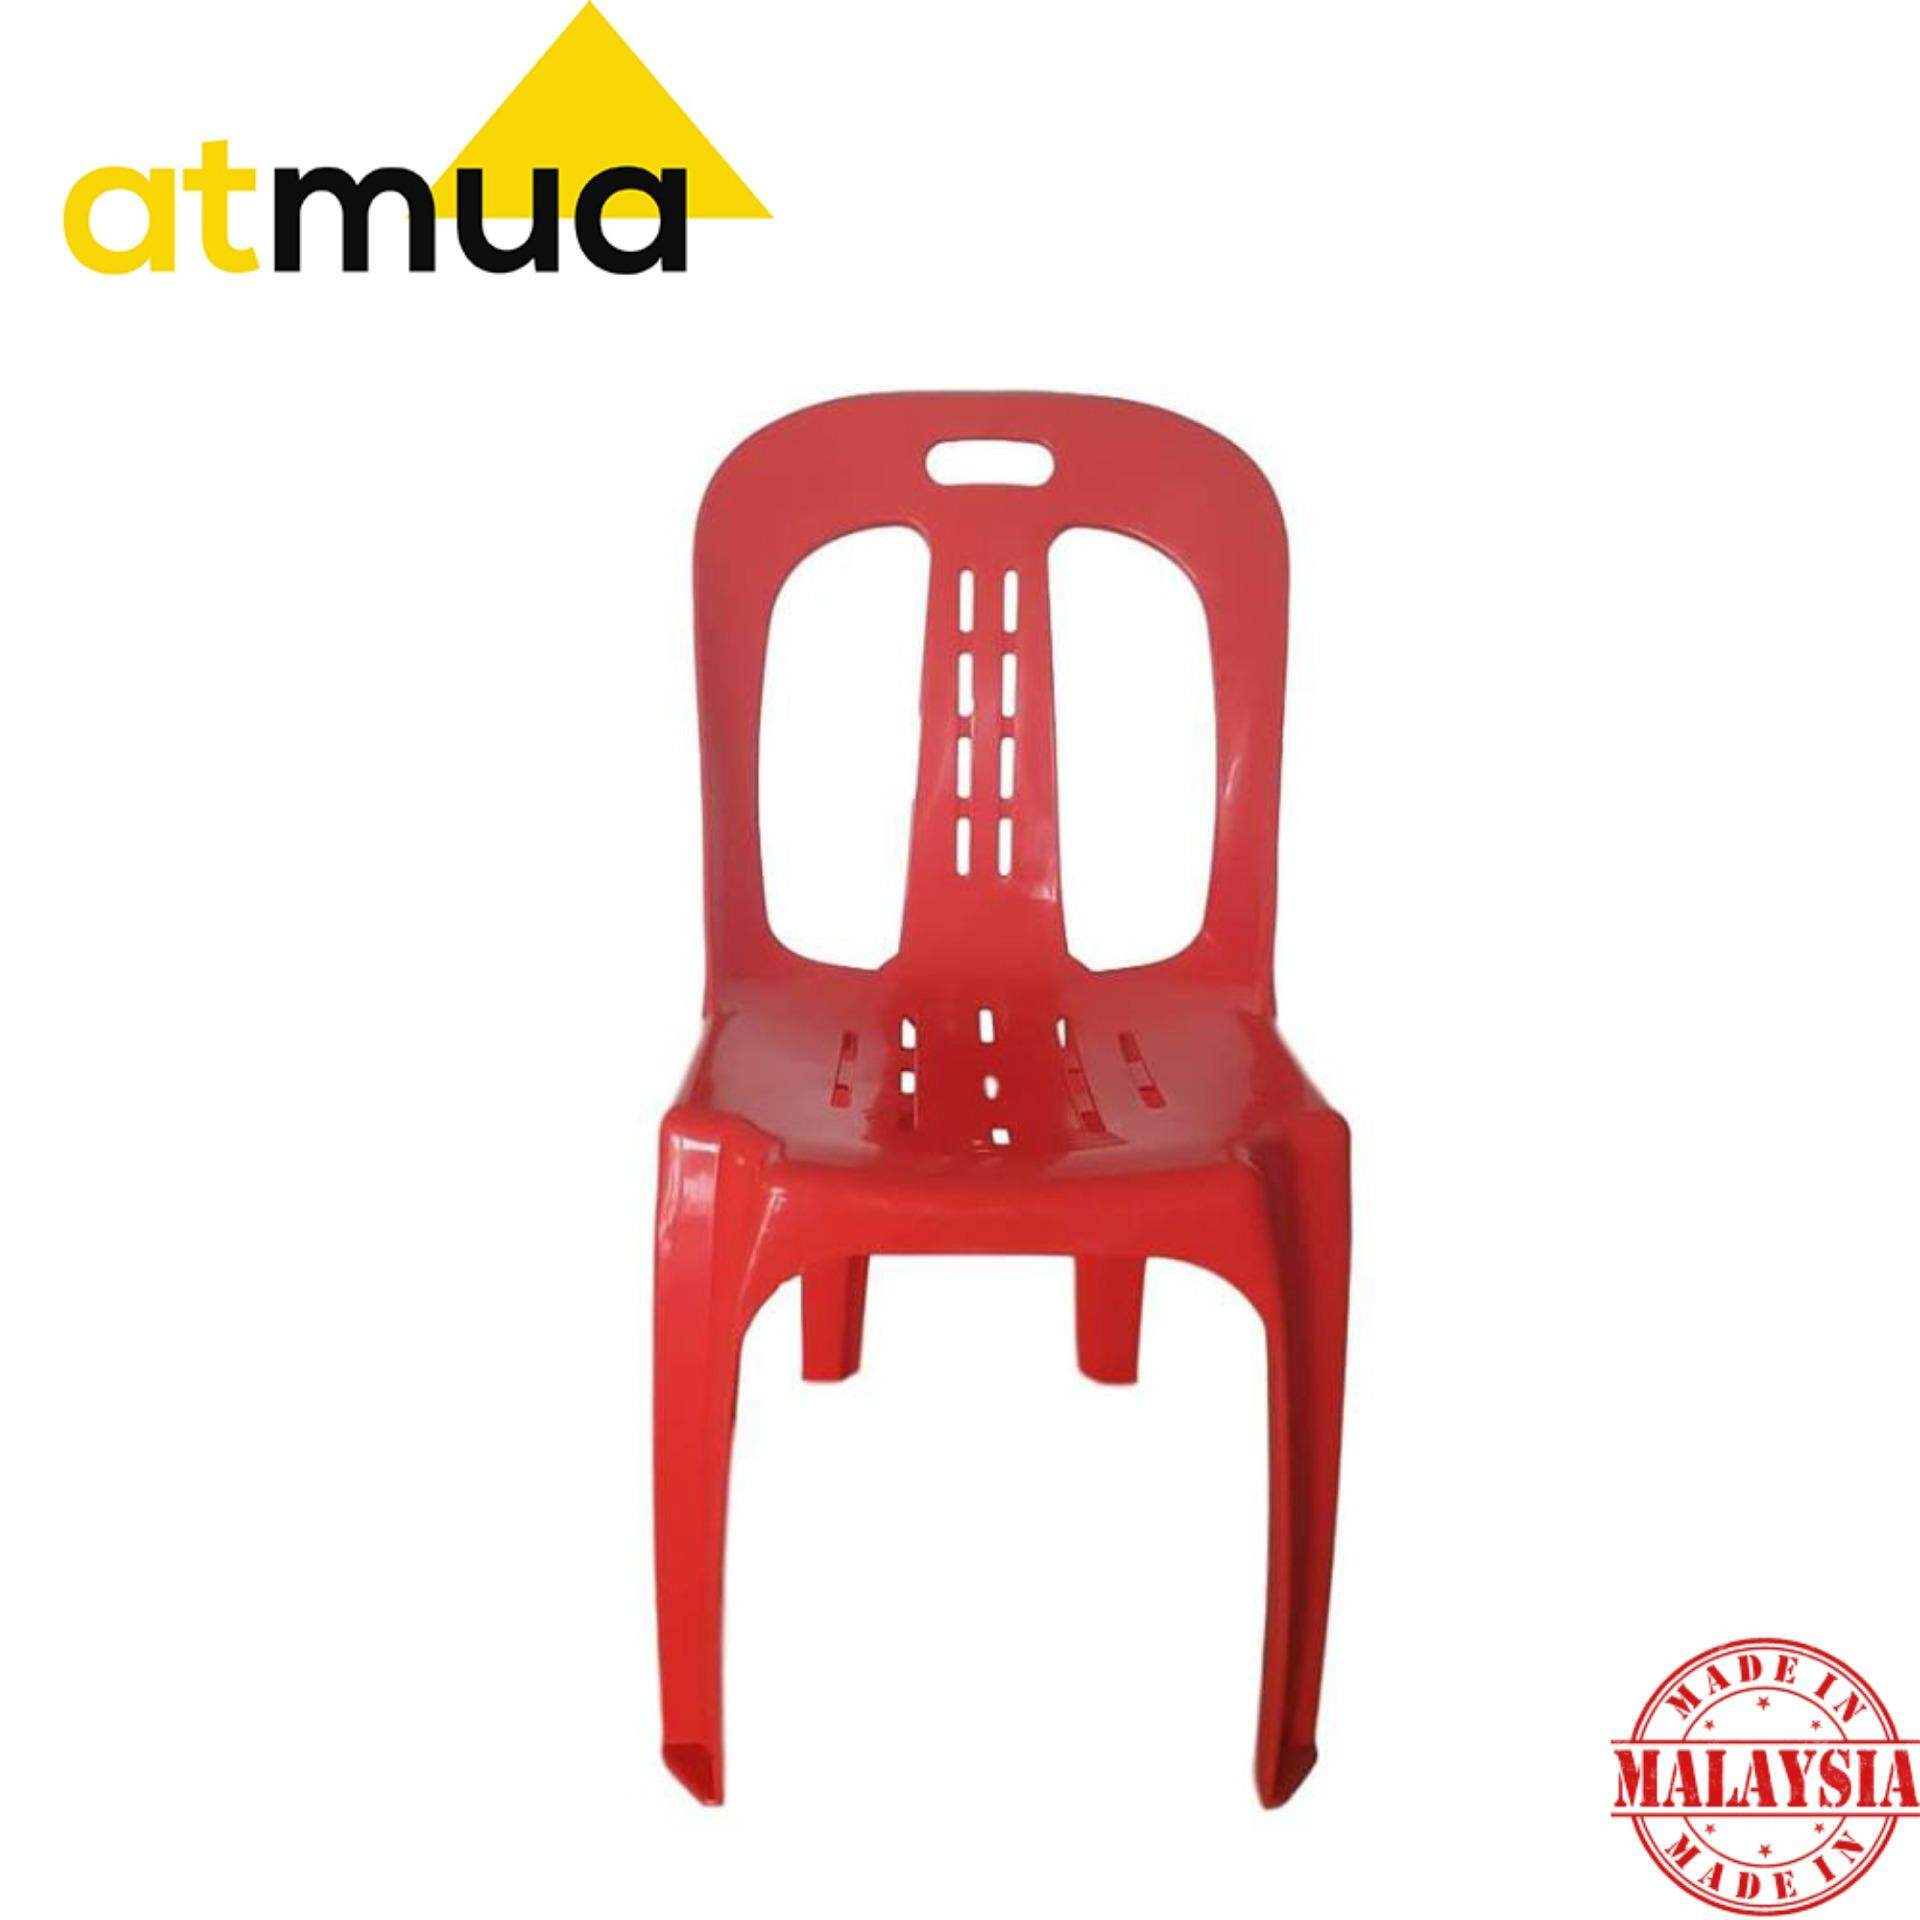 Atmua Legend Plastic Chair Restaurant / Cafe Chair / Mamak *Strong and Durable* [150kg Capacity Load]